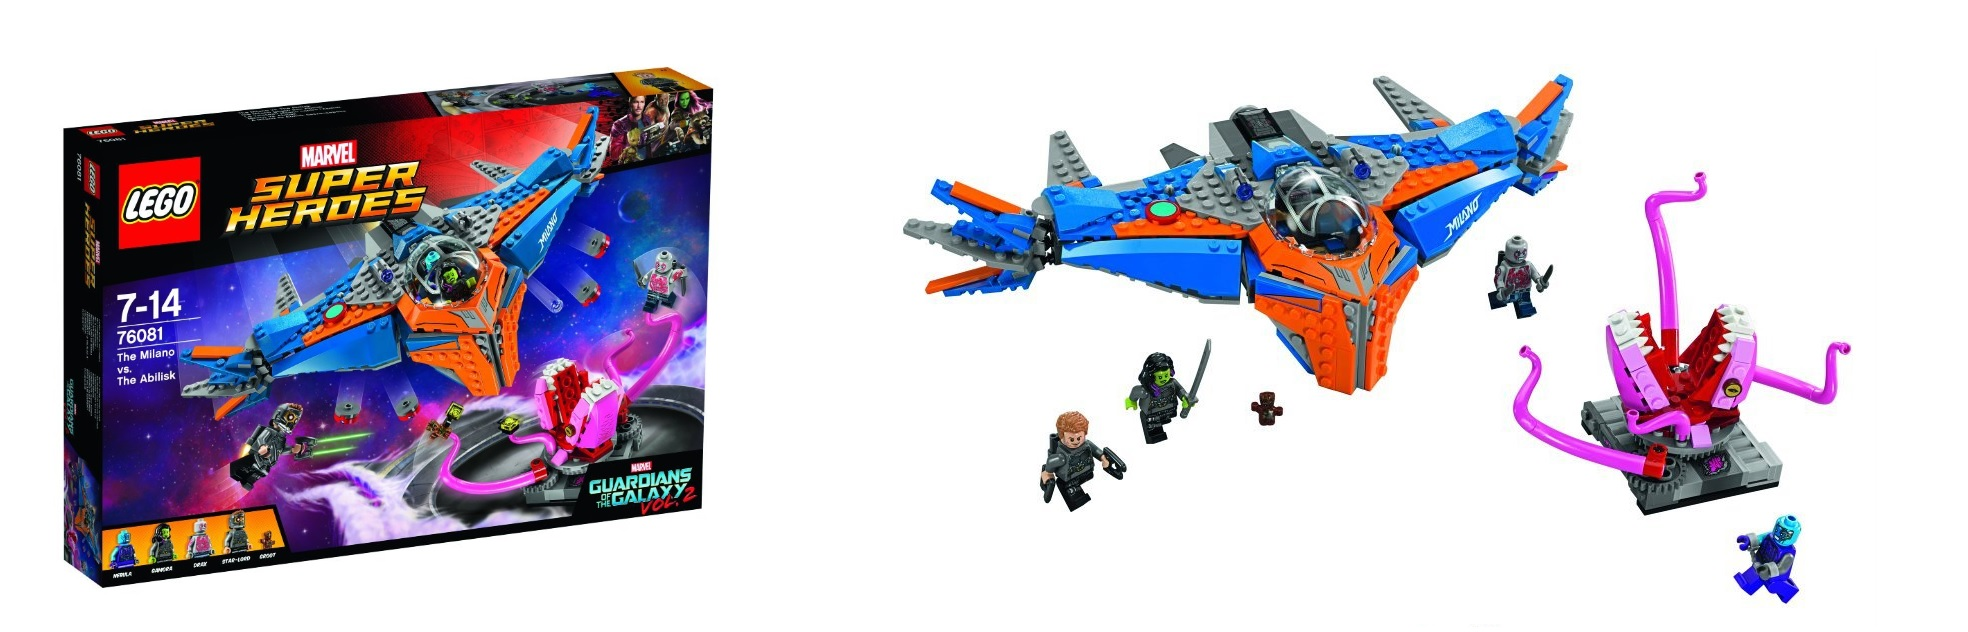 Guardians of the Galaxy Volume 2 LEGO Marvel Super Heroes